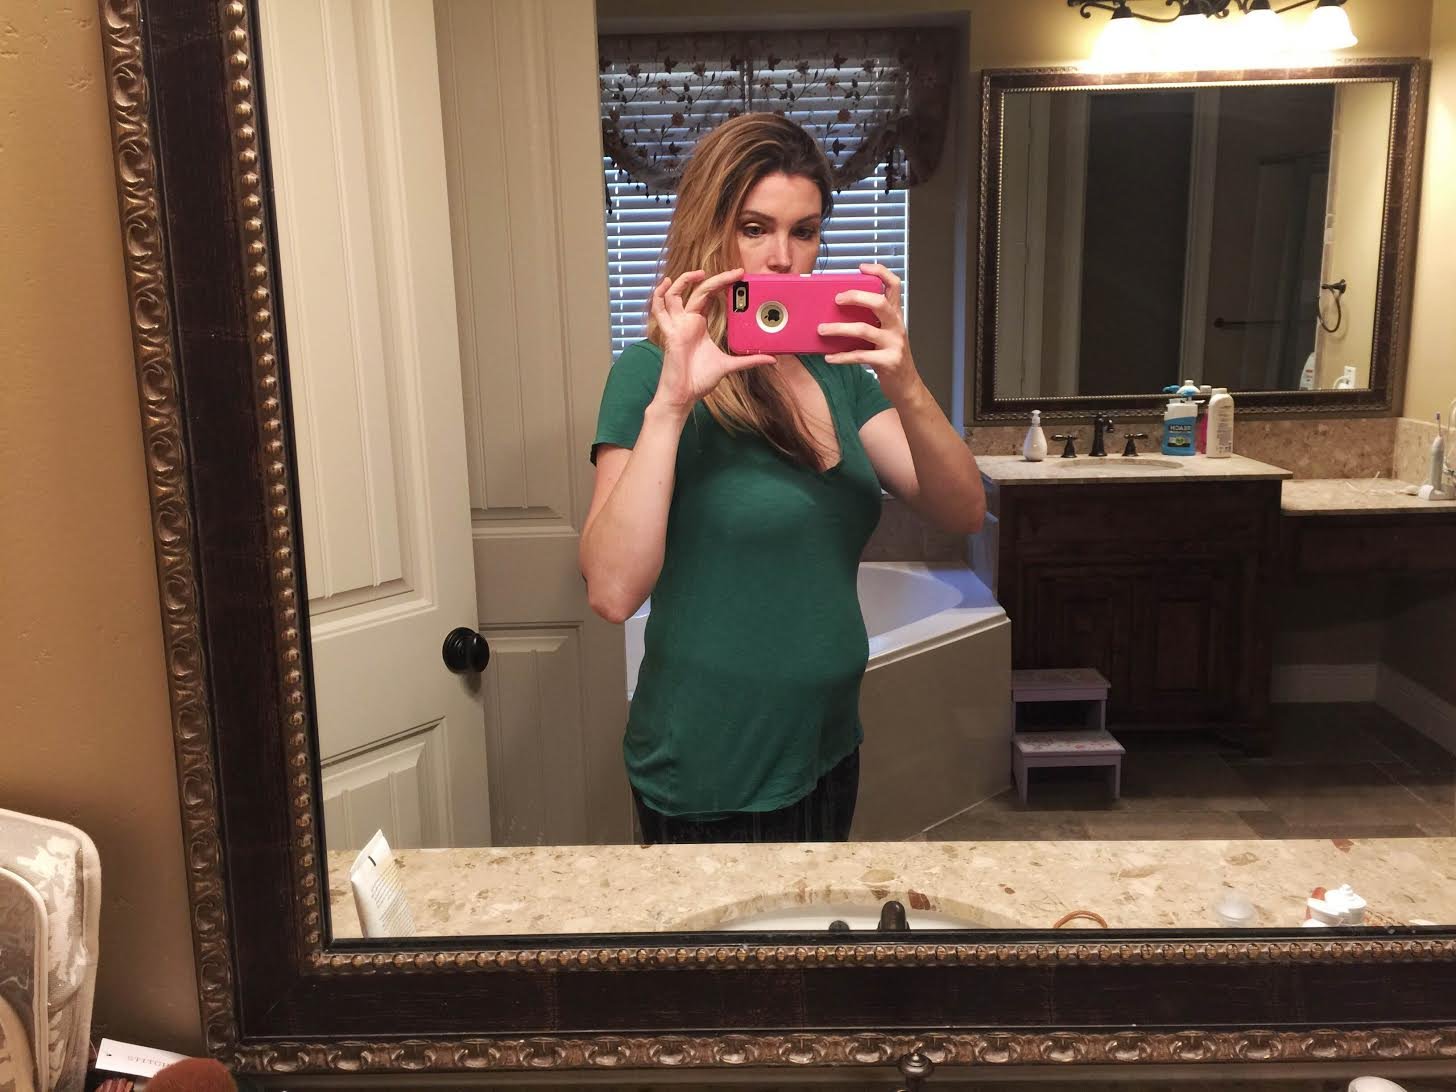 Freezing The Mom-Bod With CoolSculpting, Again